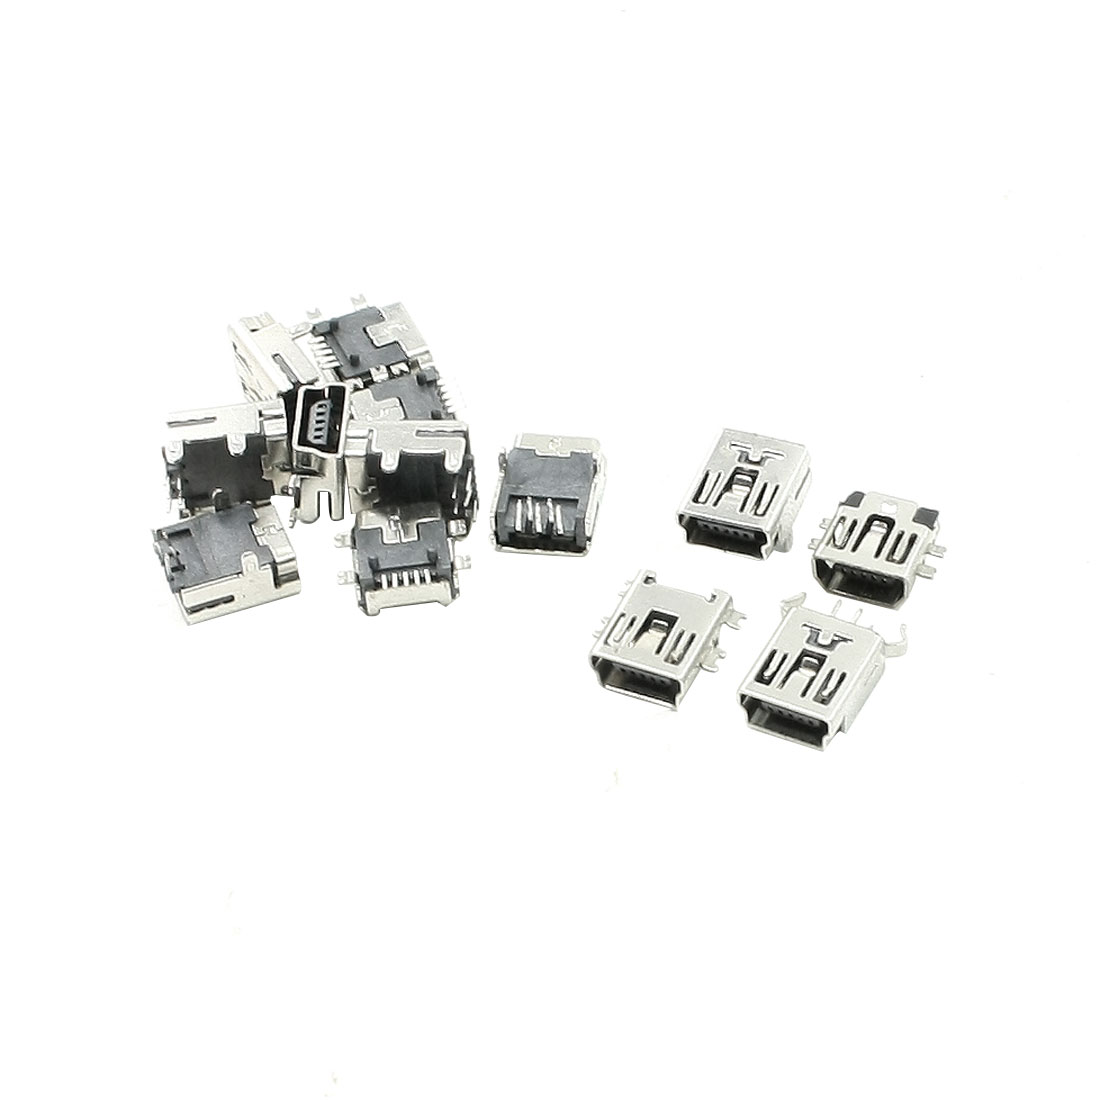 Multi Mounting Types Mini B USB 5 Pin Female Connectors Jacks Ports 13 Pcs